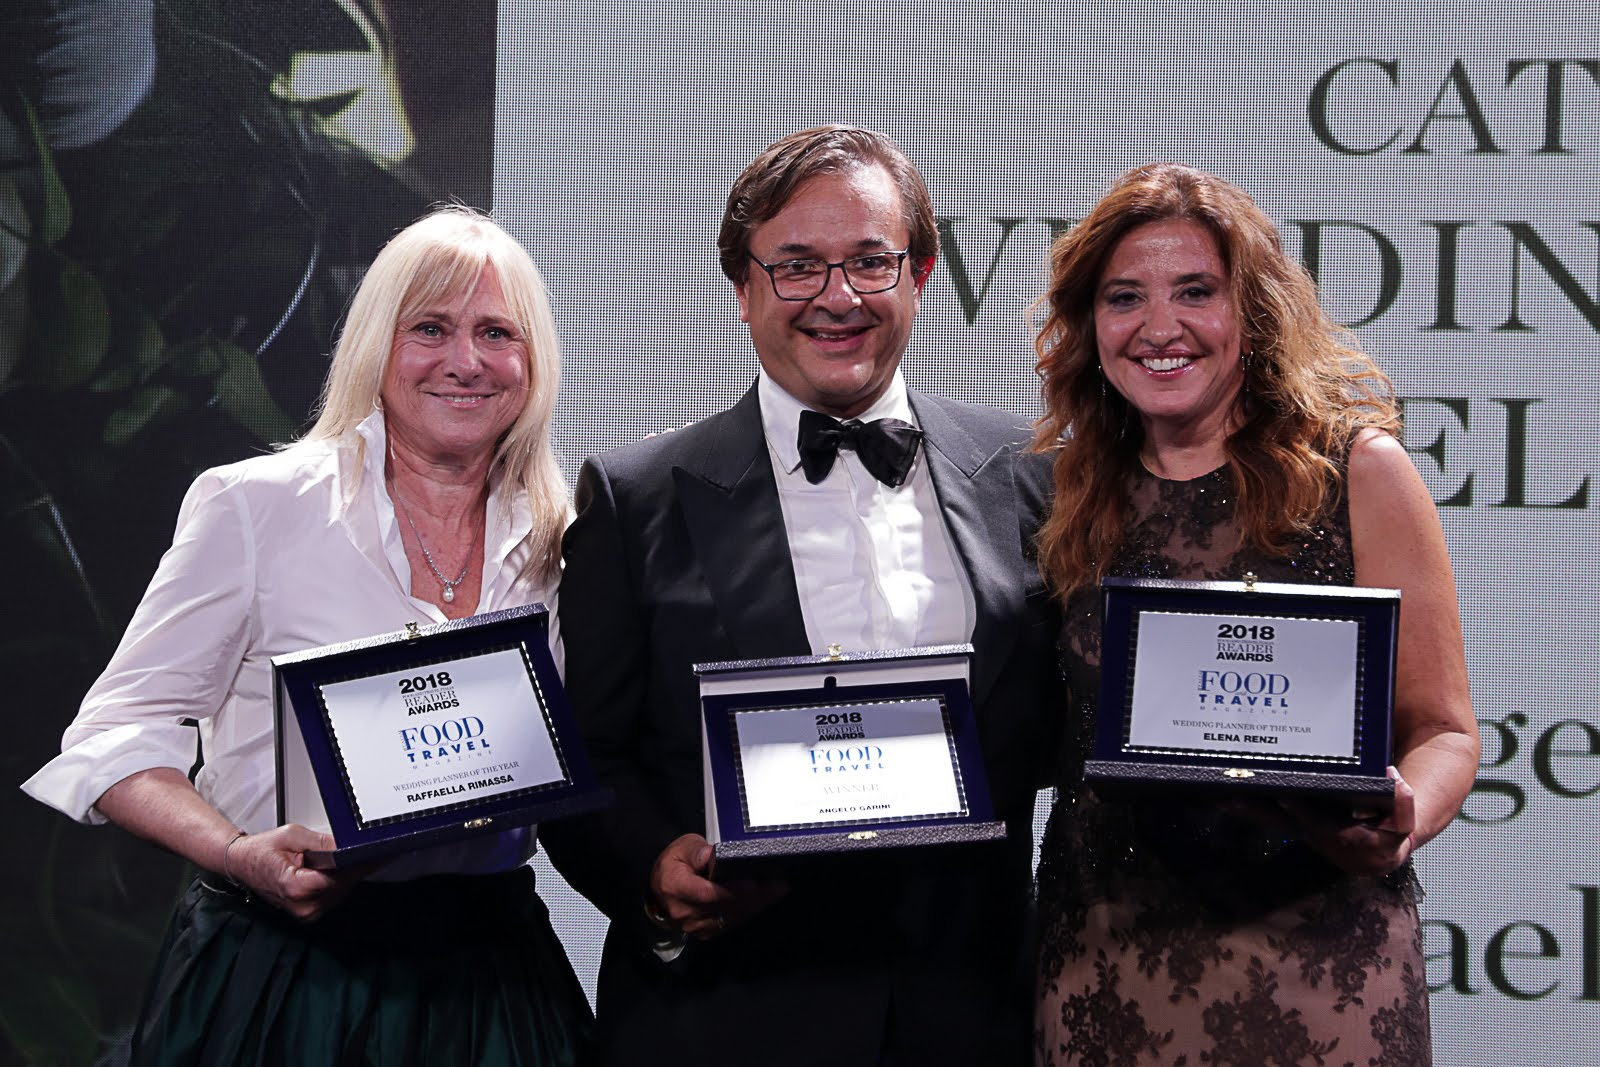 Food And Travel Awards 2018 324